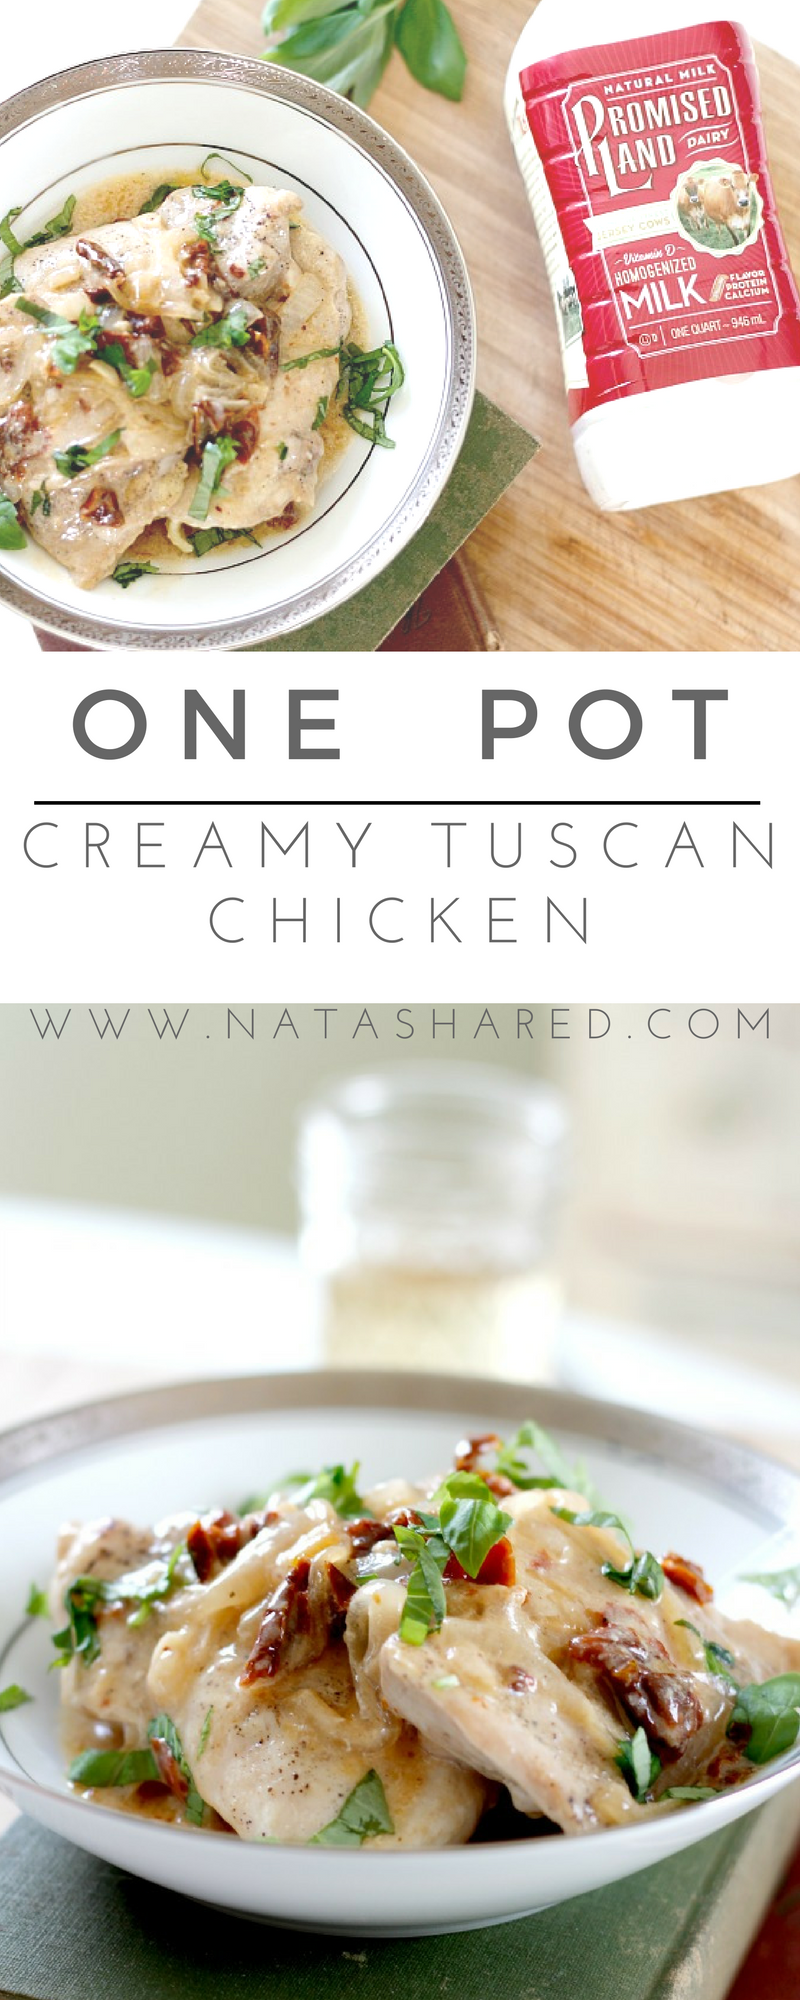 One Pot Creamy Tuscan Chicken a simple and flavorful dish to add to your weeknight menu rotation!